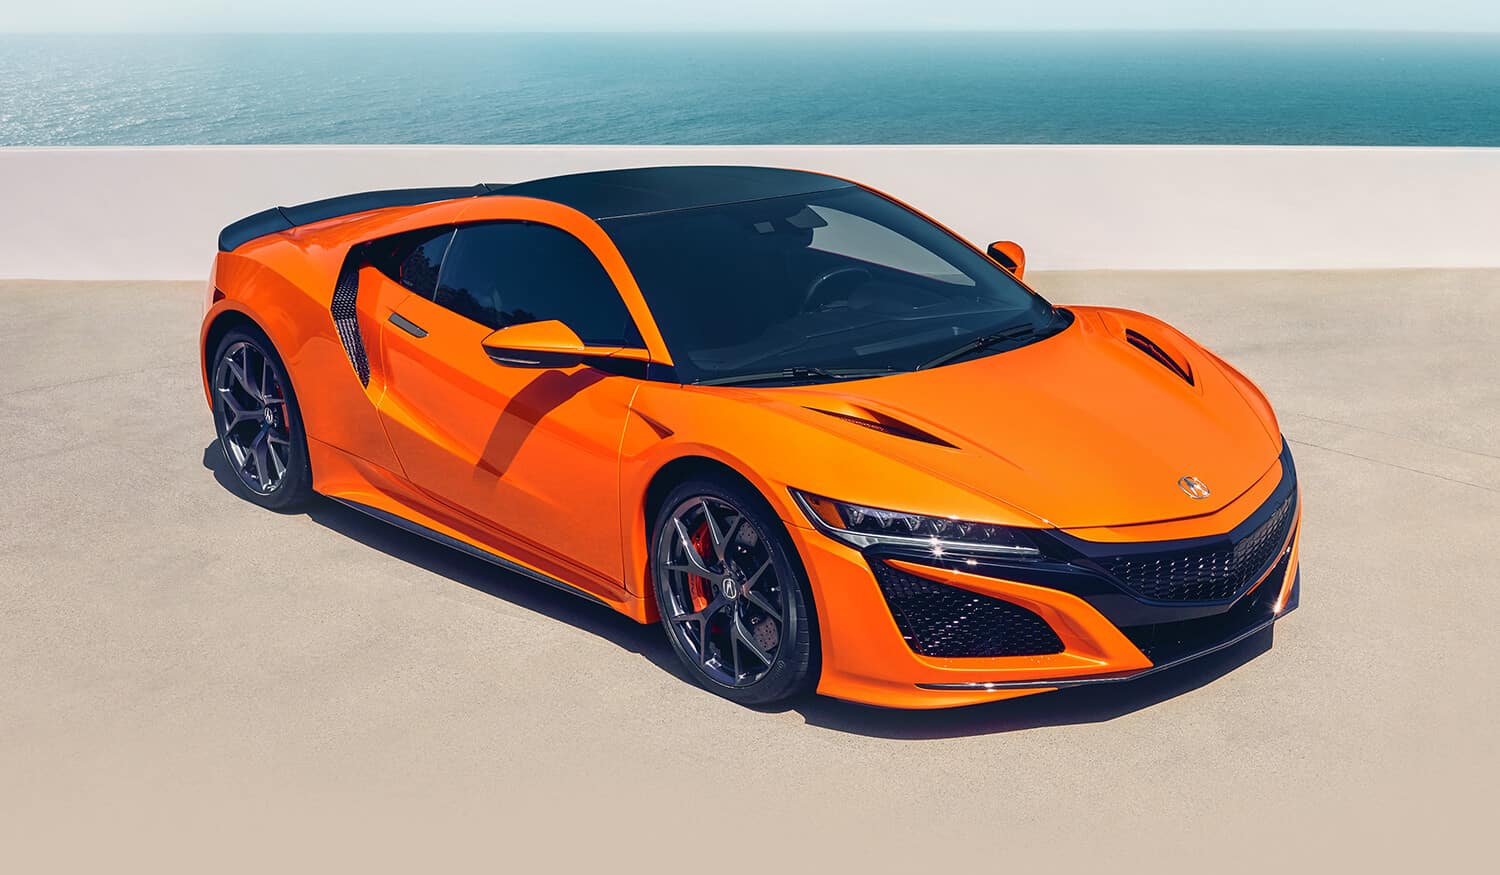 2019 Acura NSX Exterior Front Angle Passenger Side Thermal Orange Pearl